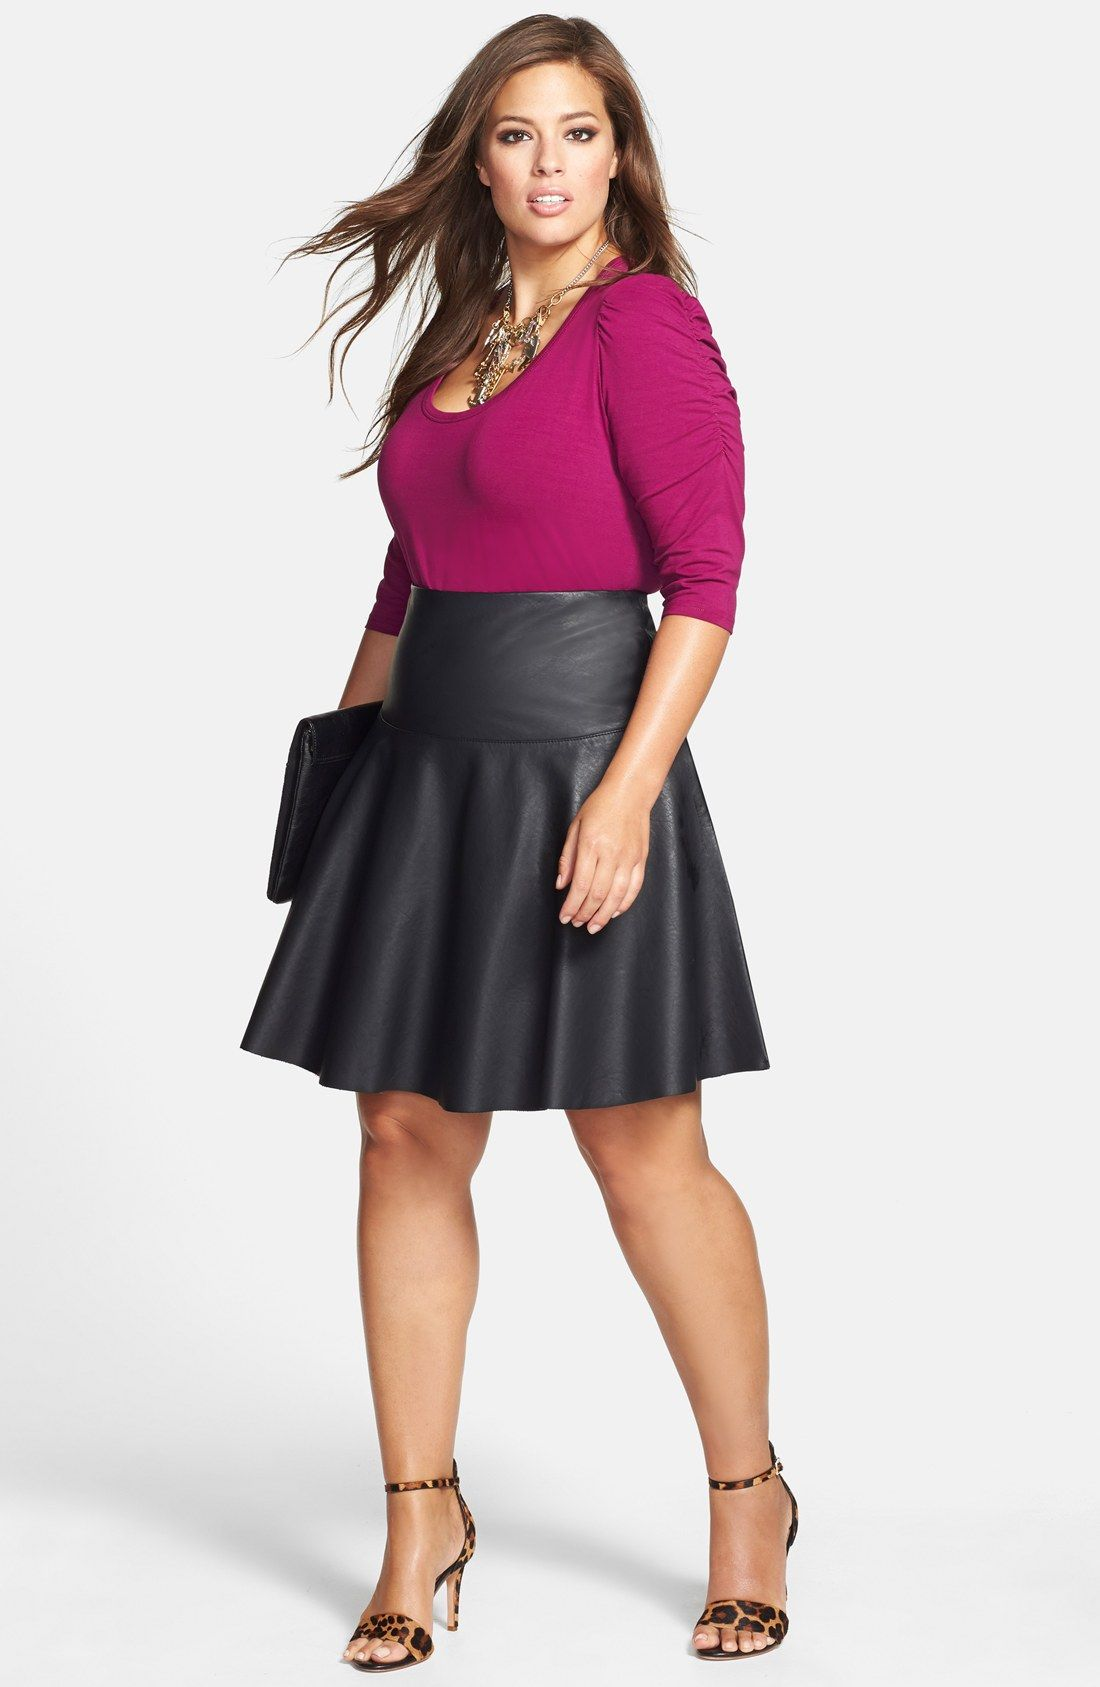 I love this outfit...(Ashley Graham)